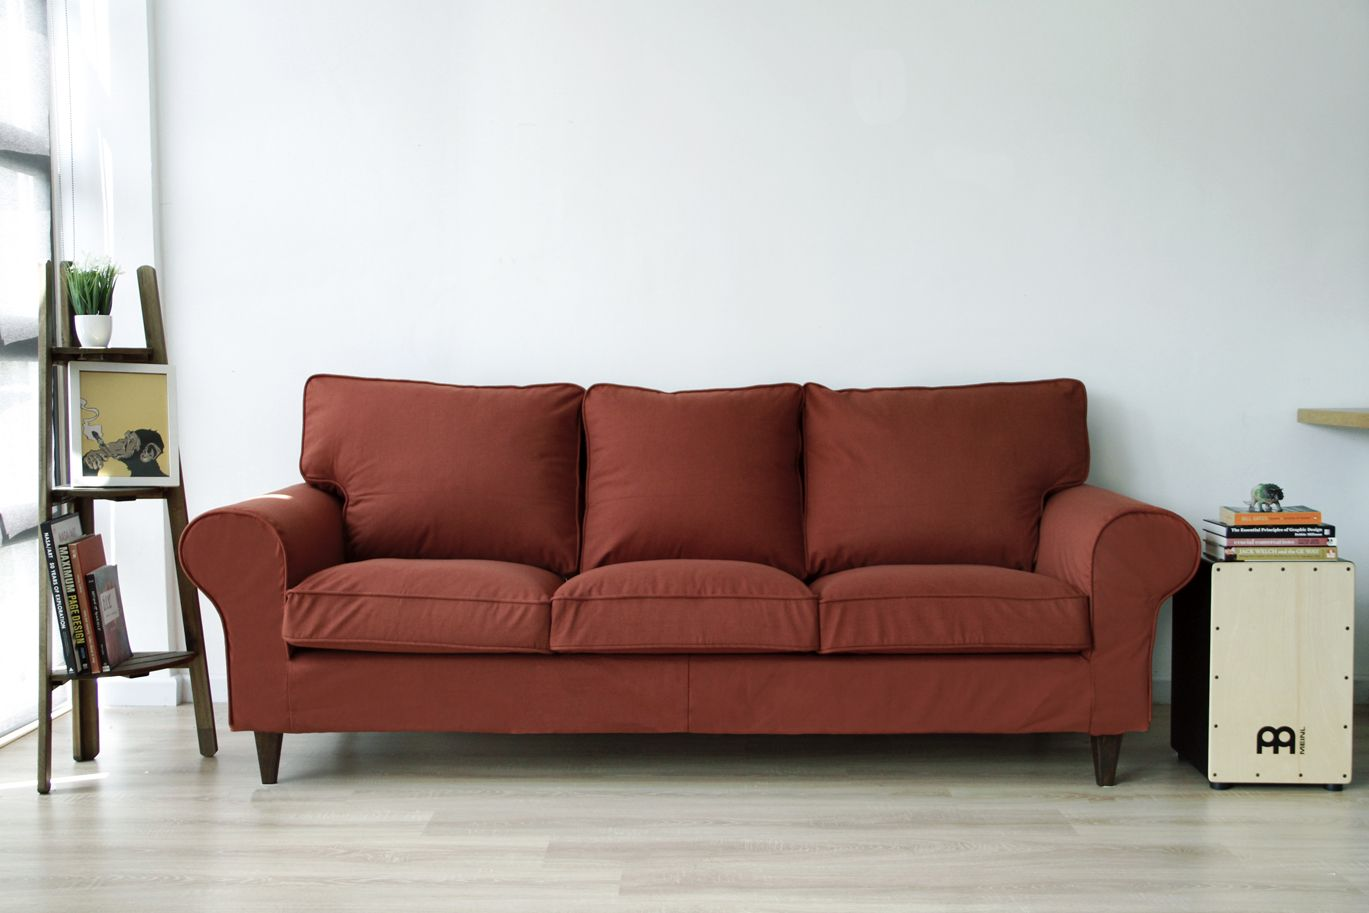 Rust Red Woollen Snug Fit Tailored Sofa Covers Made By Comfort Works, On An IKEA  Ektorp 3 Seater Sofa, With Replacement Custom Stained Walker Wooden Sofa ...